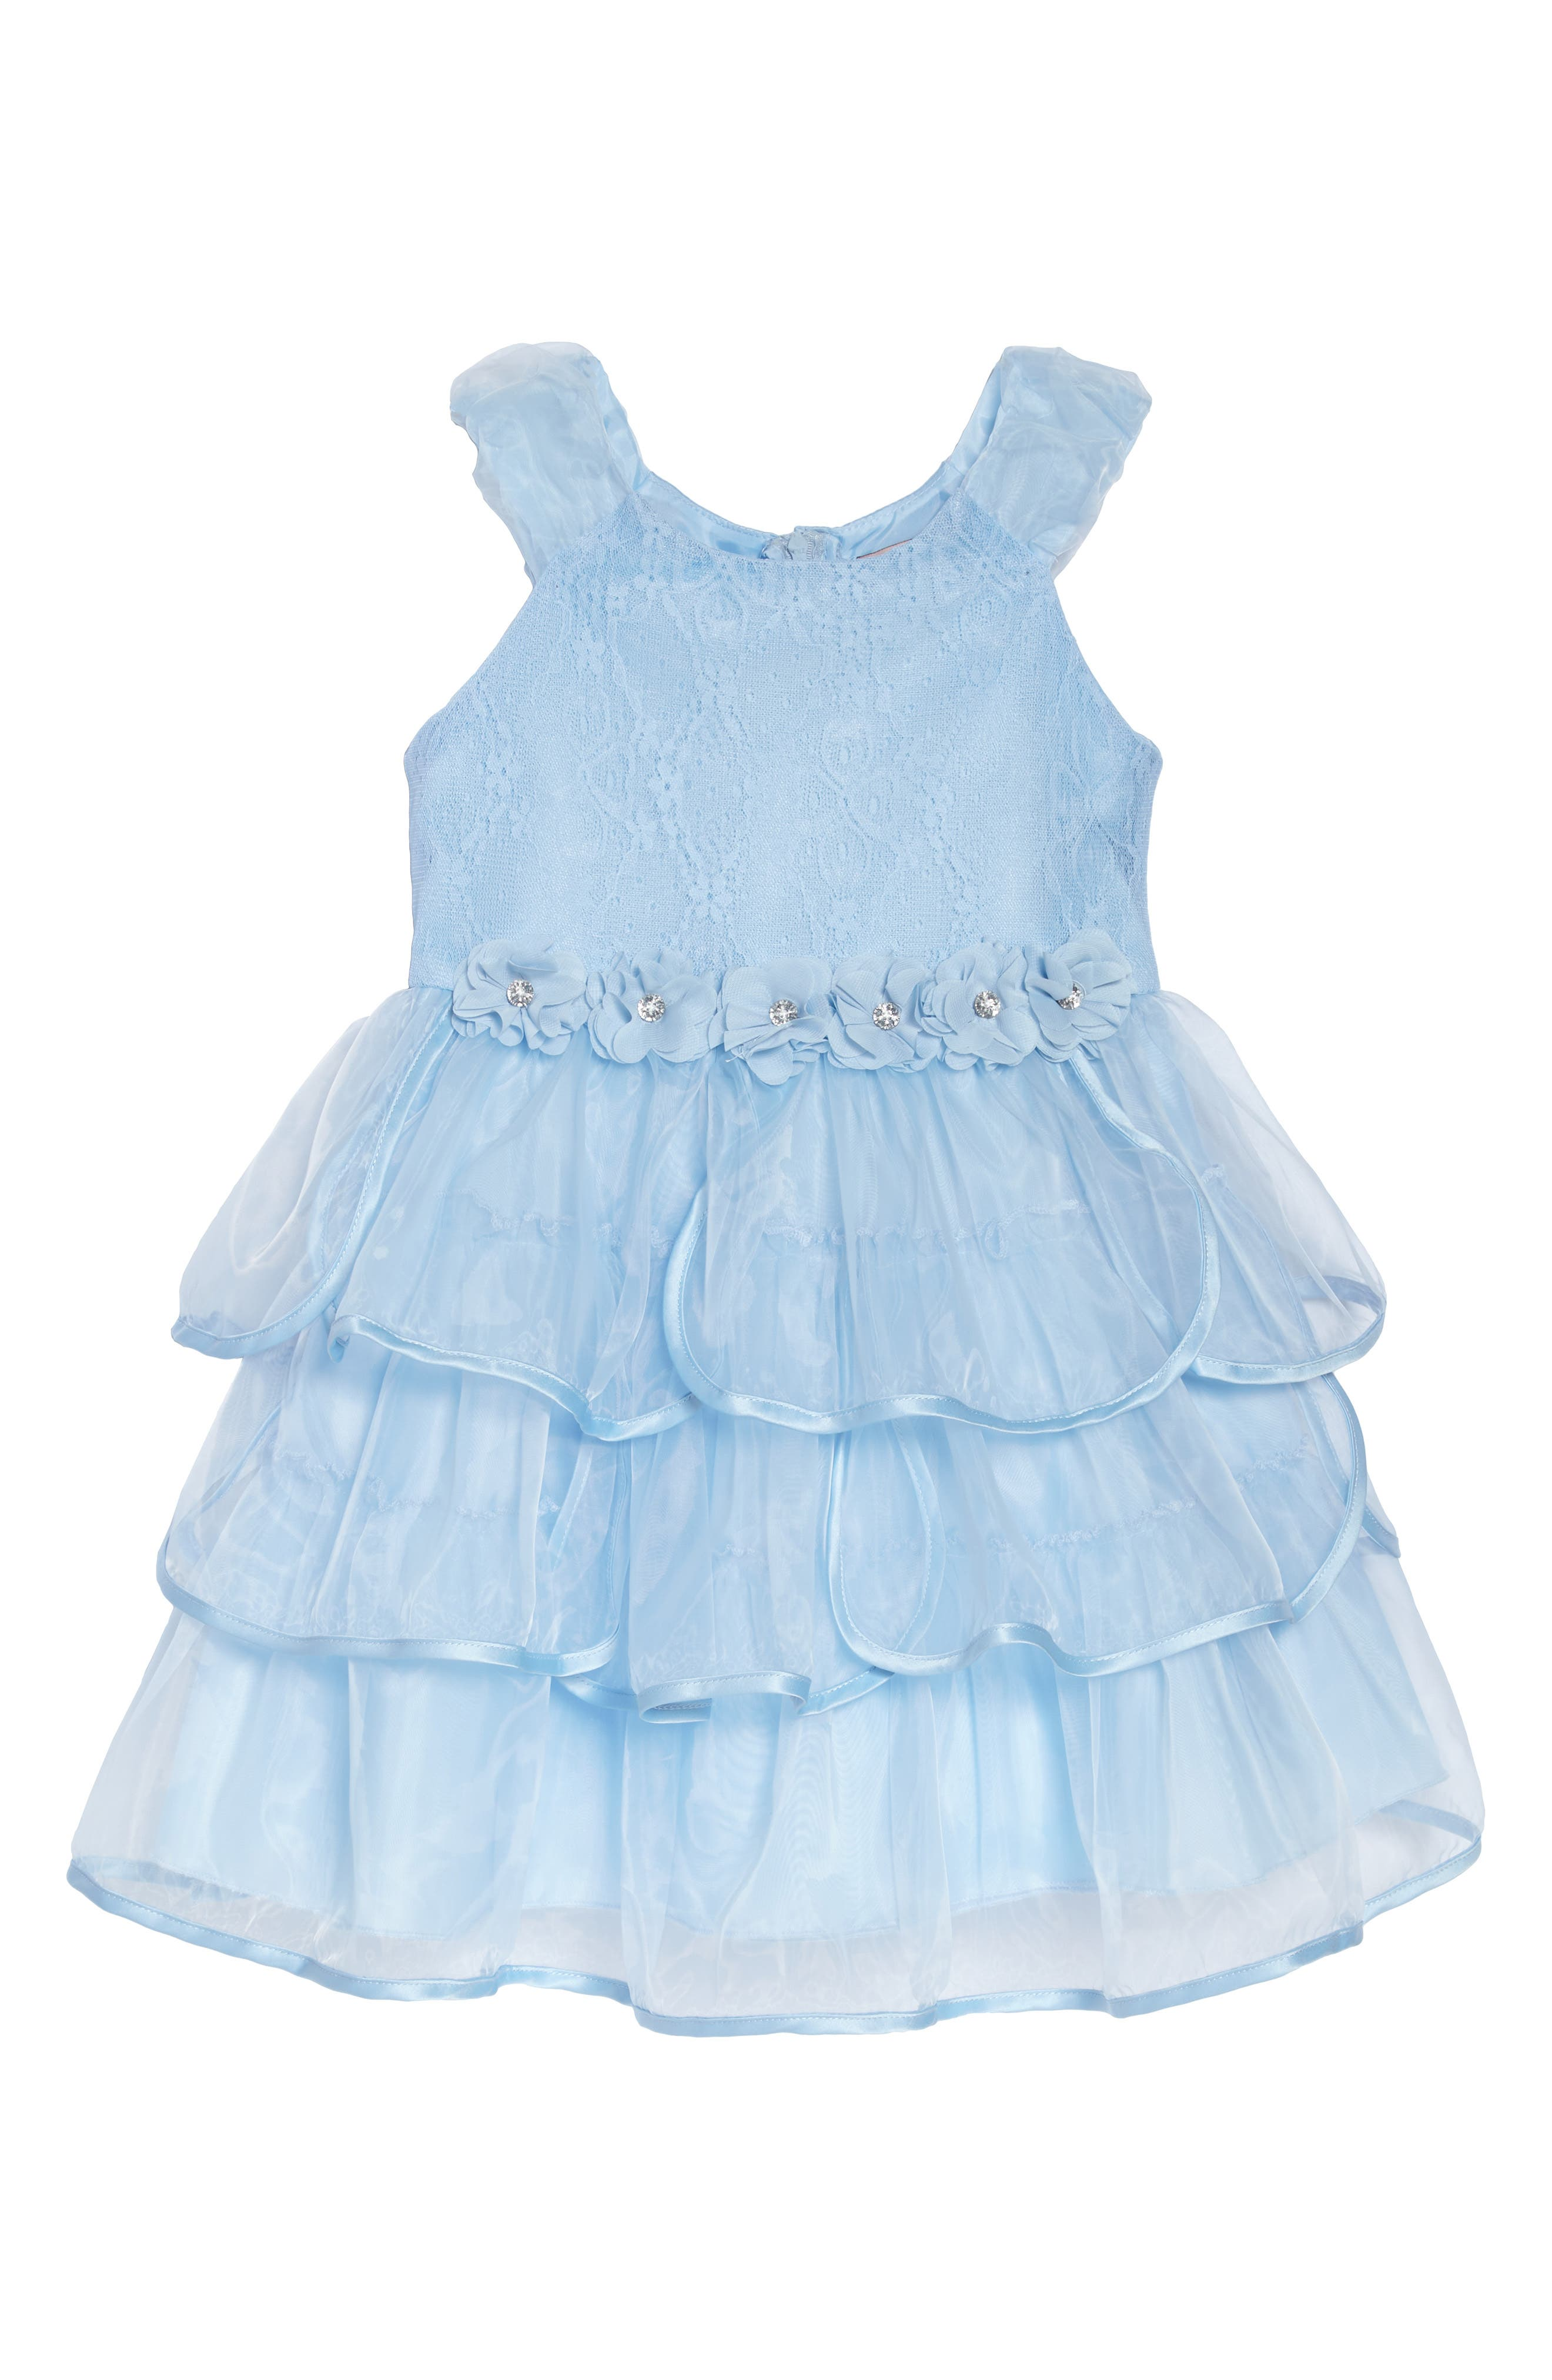 Tiered Organza Party Dress,                             Main thumbnail 1, color,                             Light Blue